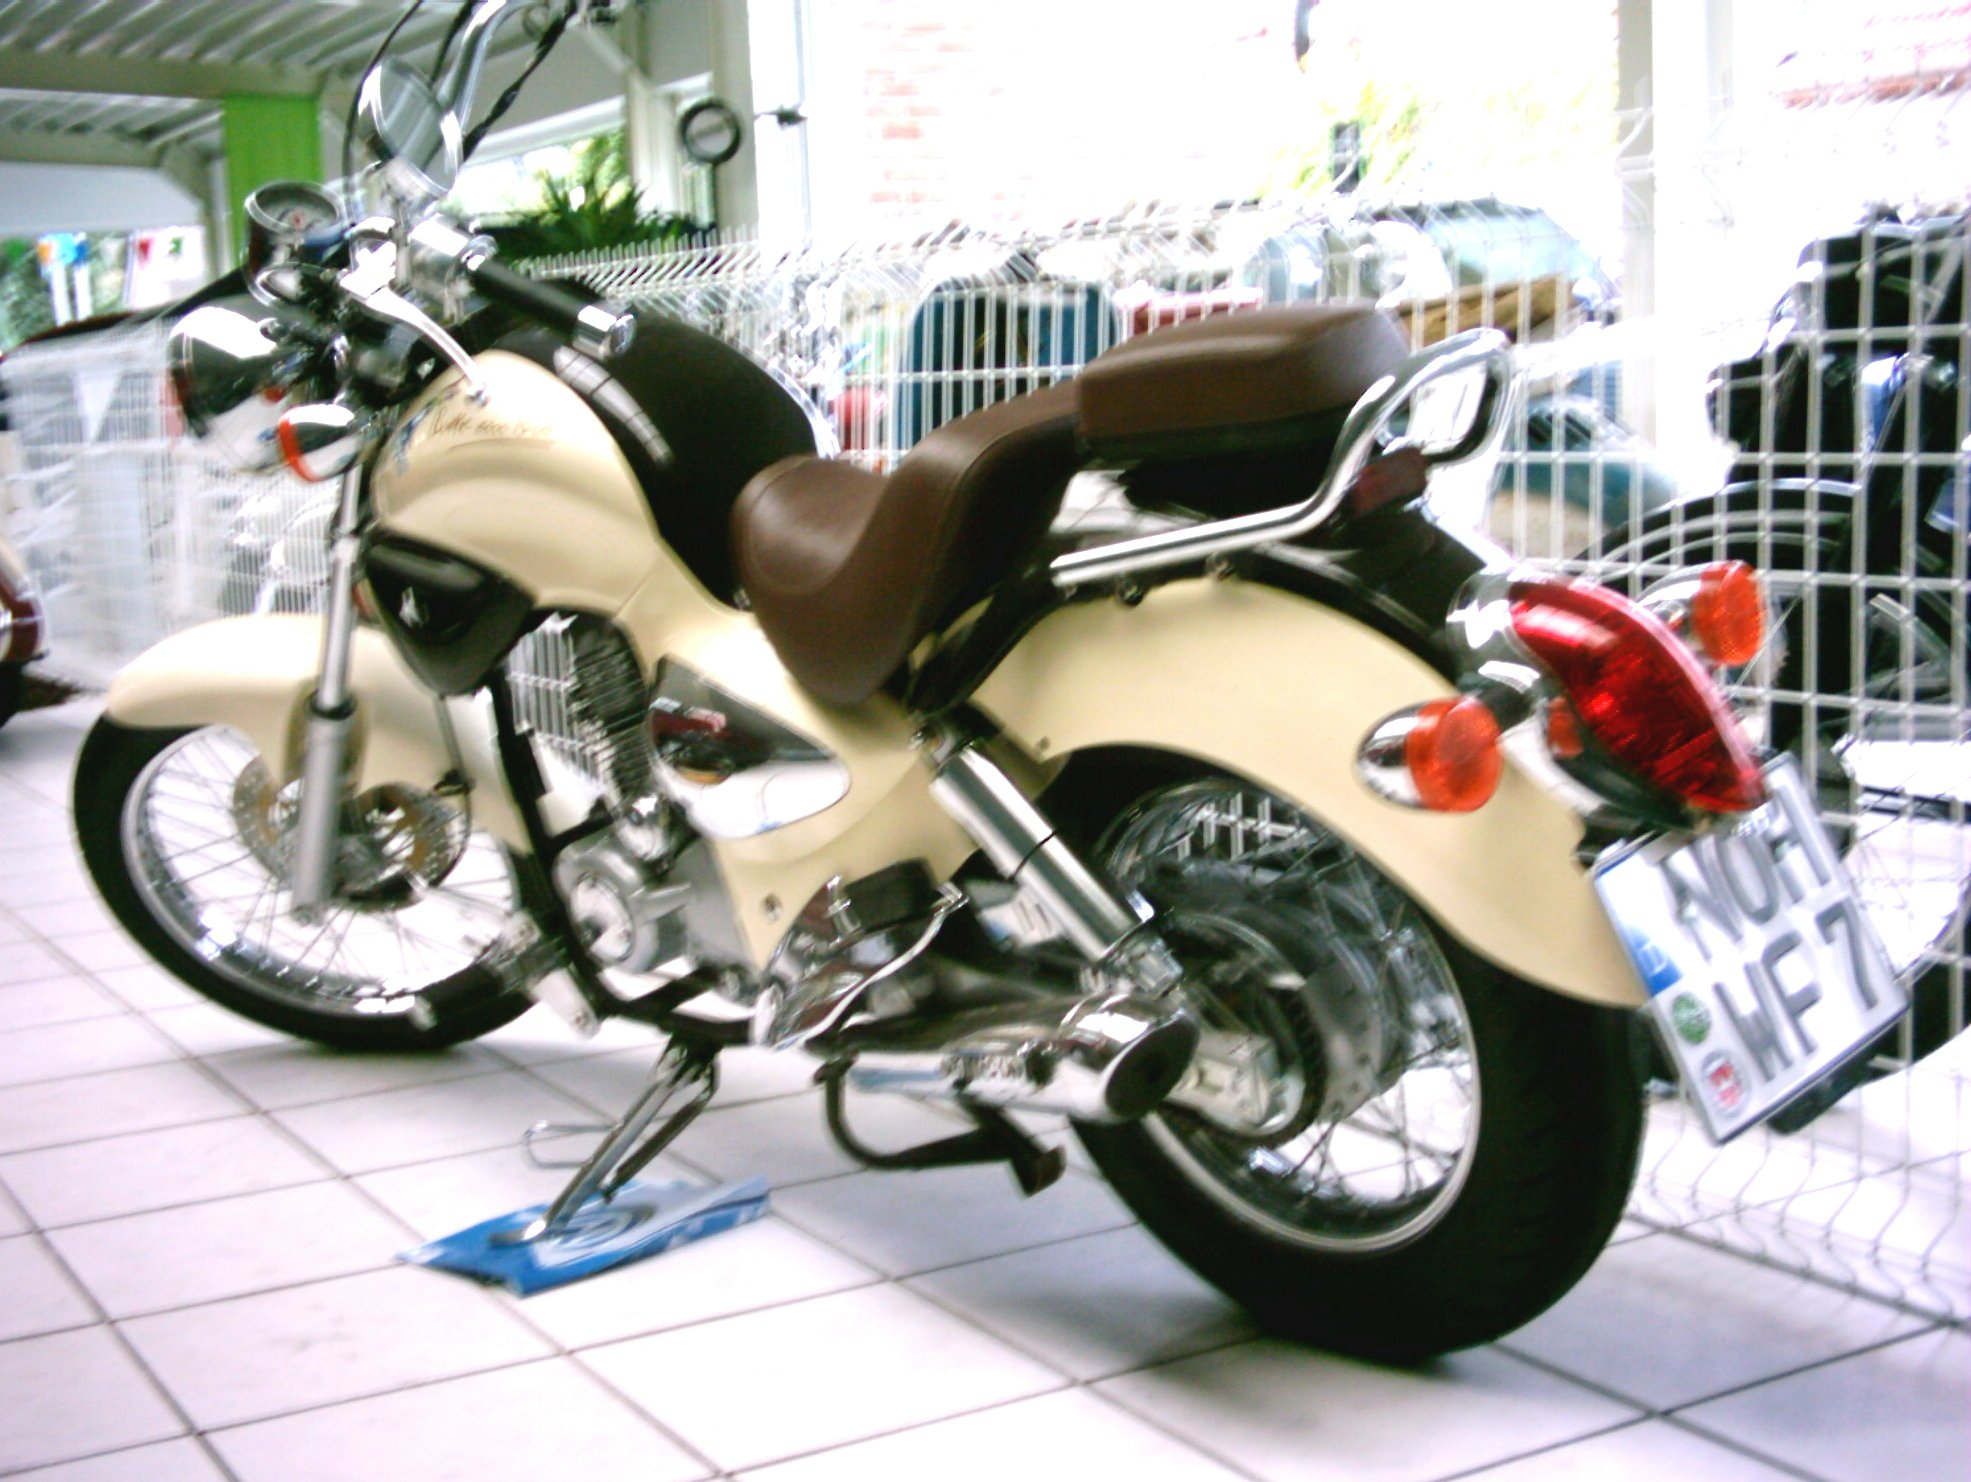 Kymco Hipster 125 2004 images #101551